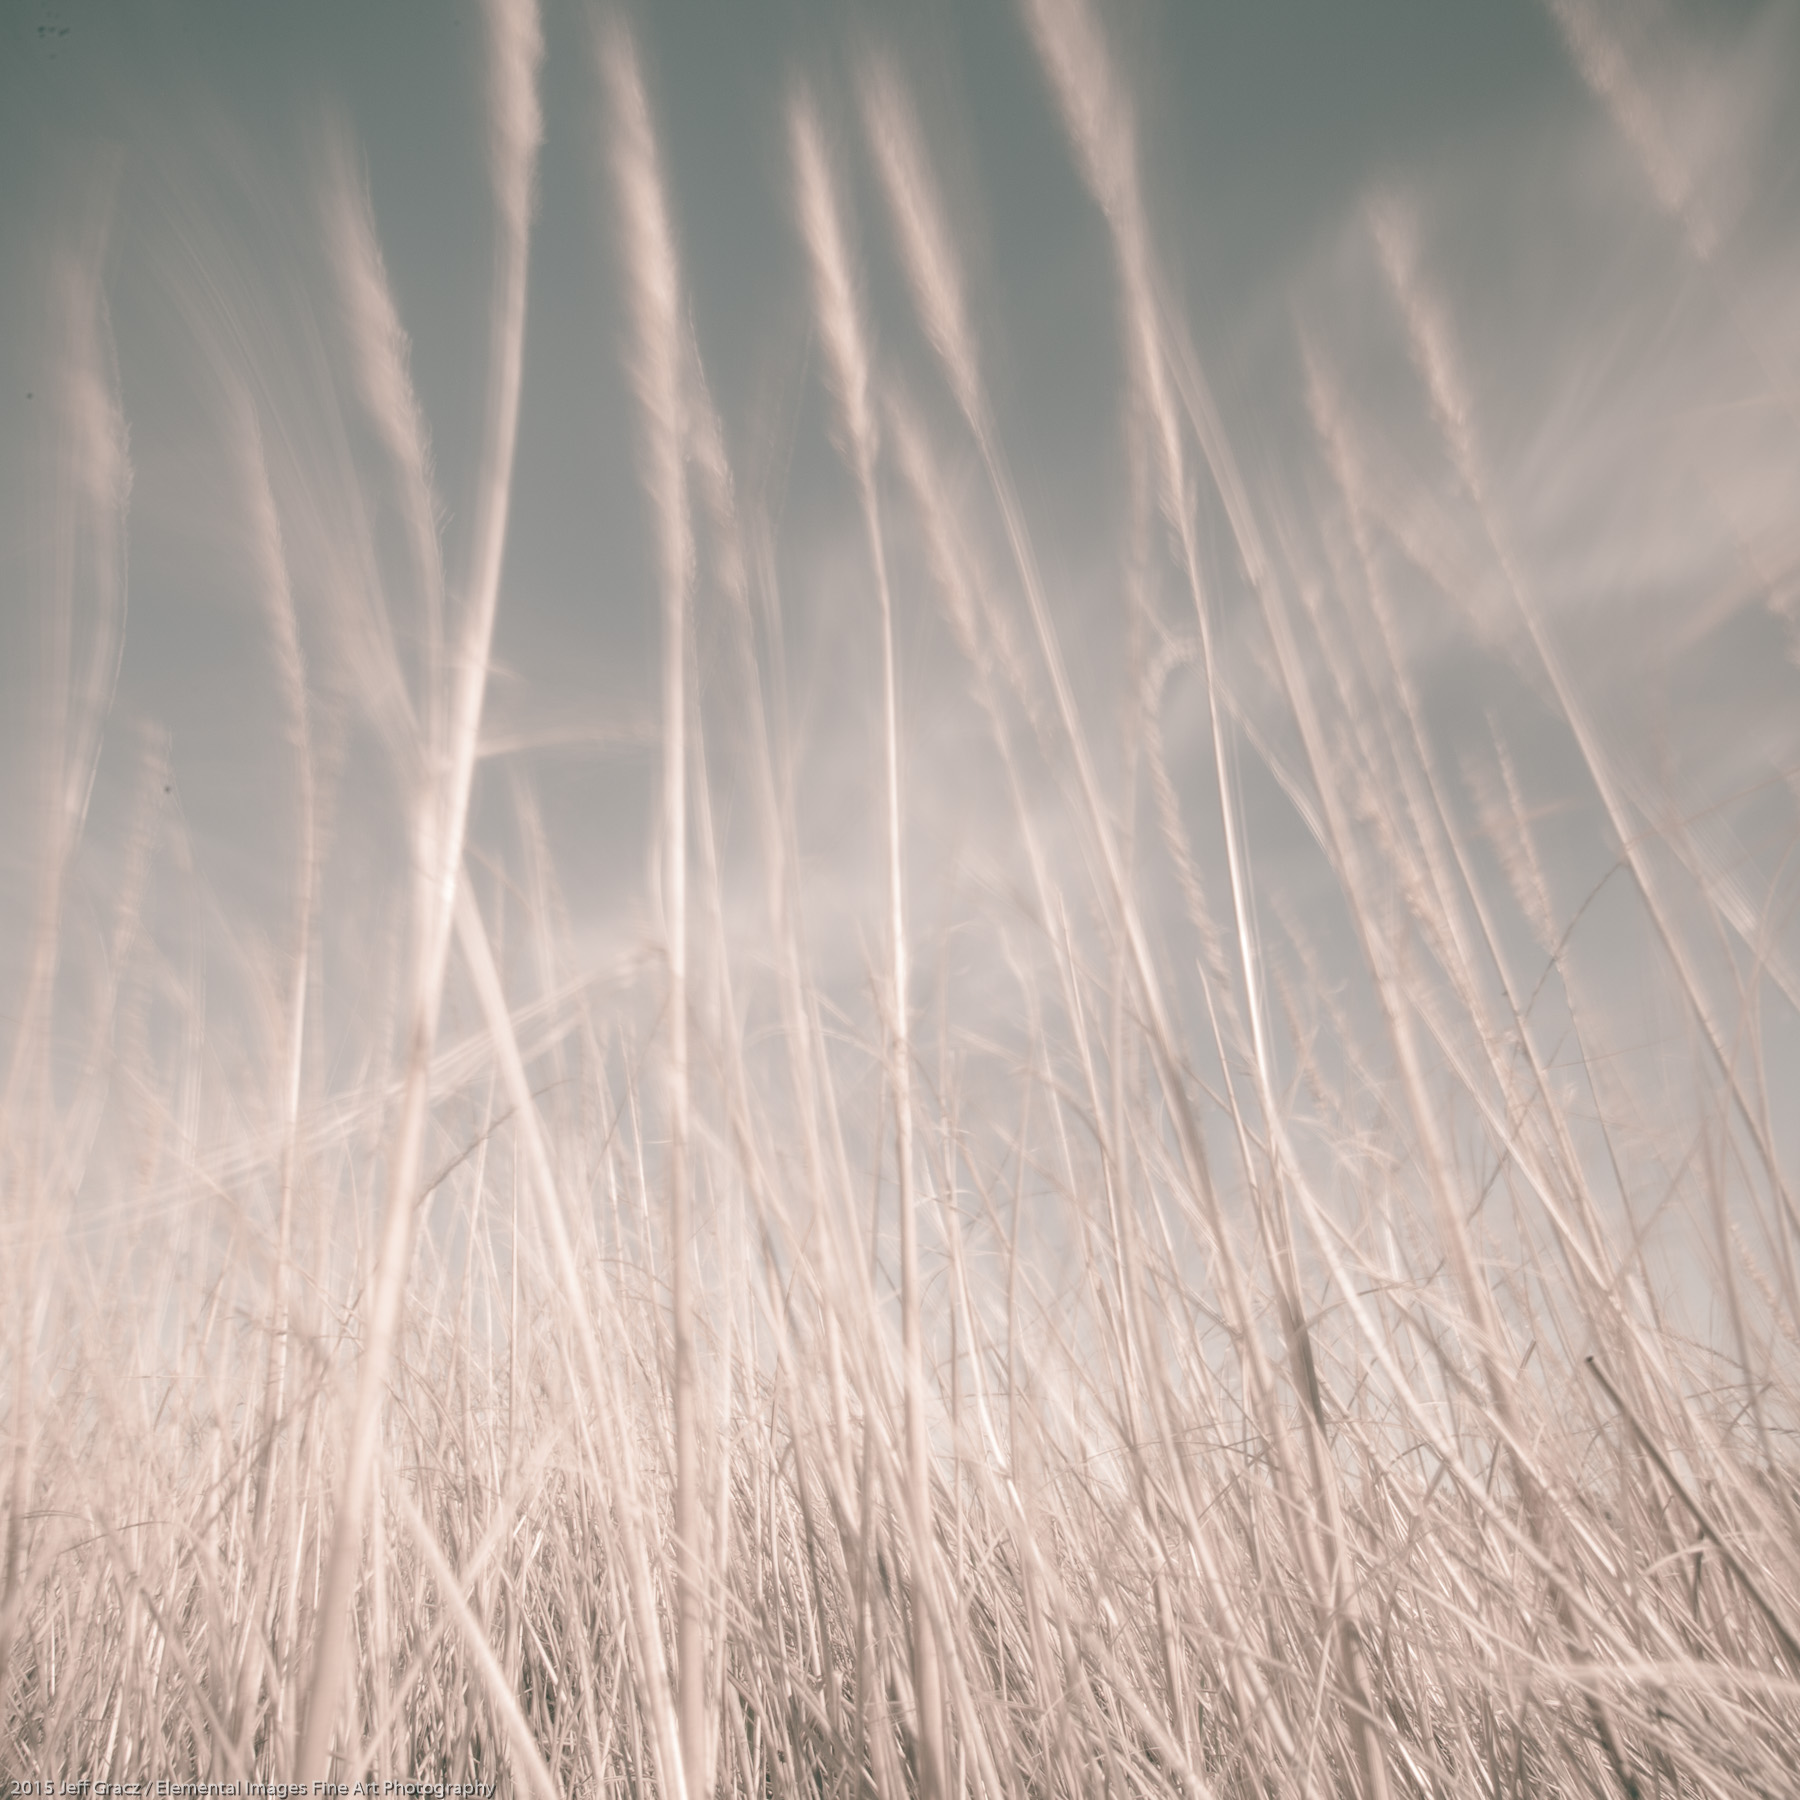 Grasses CXXXVII | Ocean Shores | WA | USA - © 2015 Jeff Gracz / Elemental Images Fine Art Photography - All Rights Reserved Worldwide